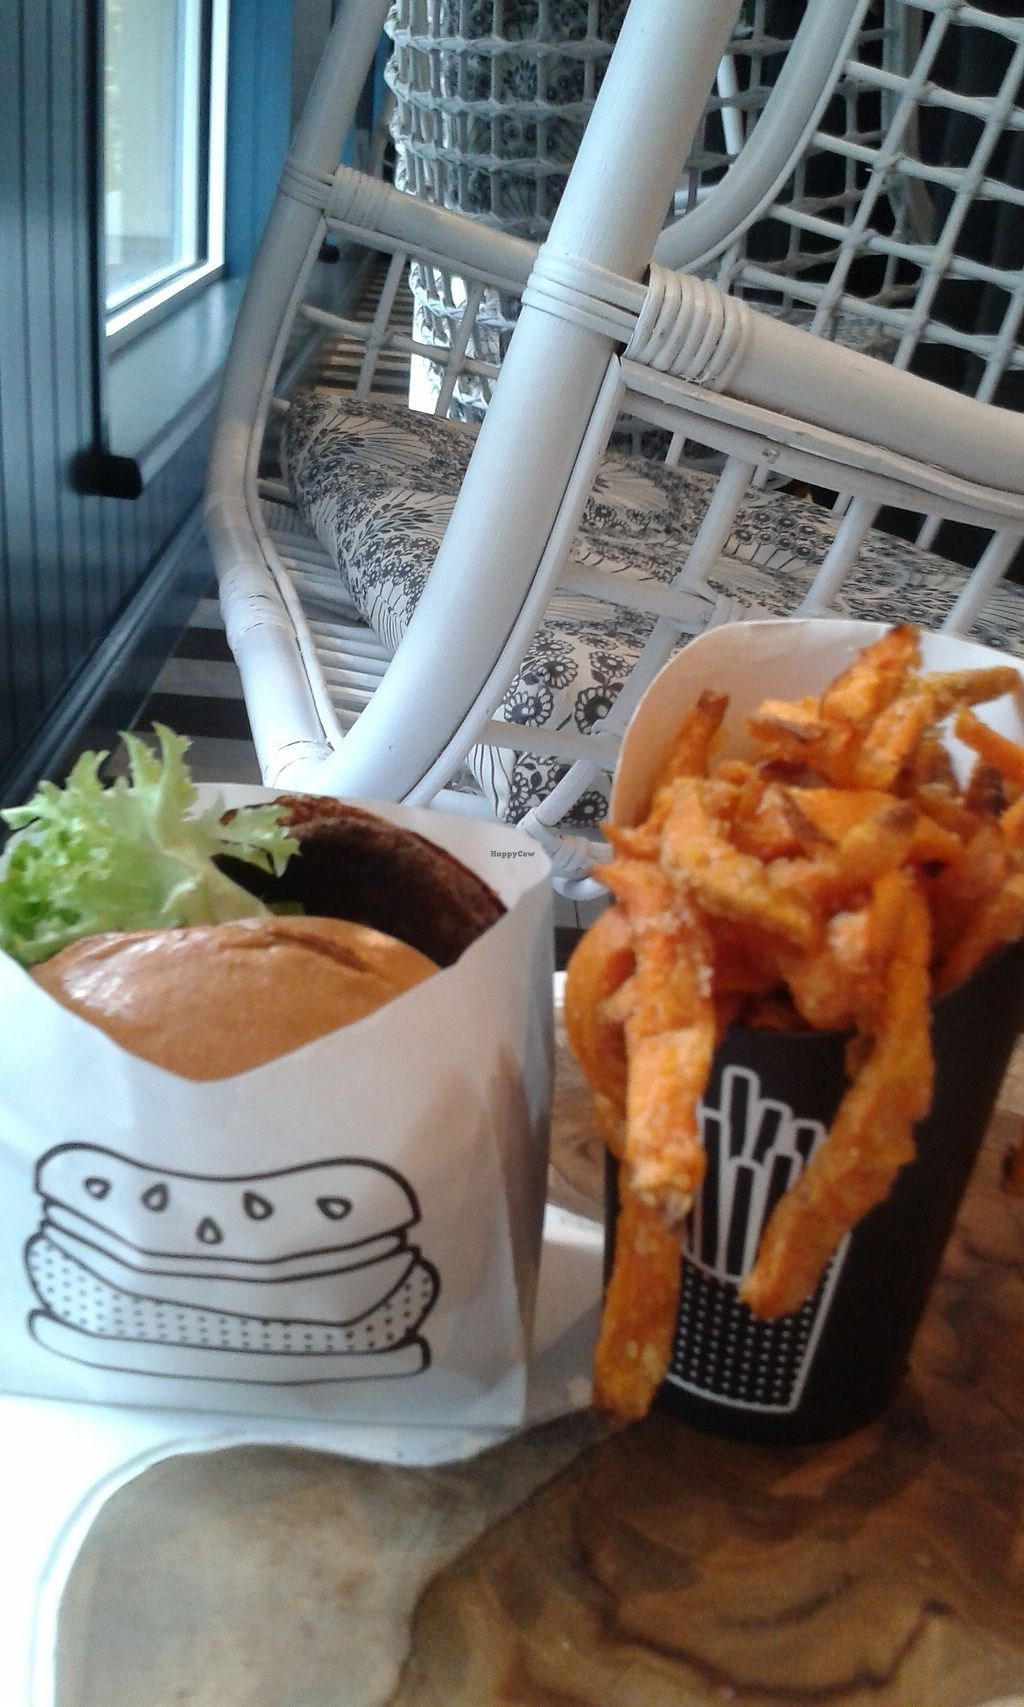 "Photo of By Chloe - Covent Garden  by <a href=""/members/profile/Vegancucc"">Vegancucc</a> <br/>Hamburger and air baked sweet potato fries <br/> February 6, 2018  - <a href='/contact/abuse/image/111410/355811'>Report</a>"